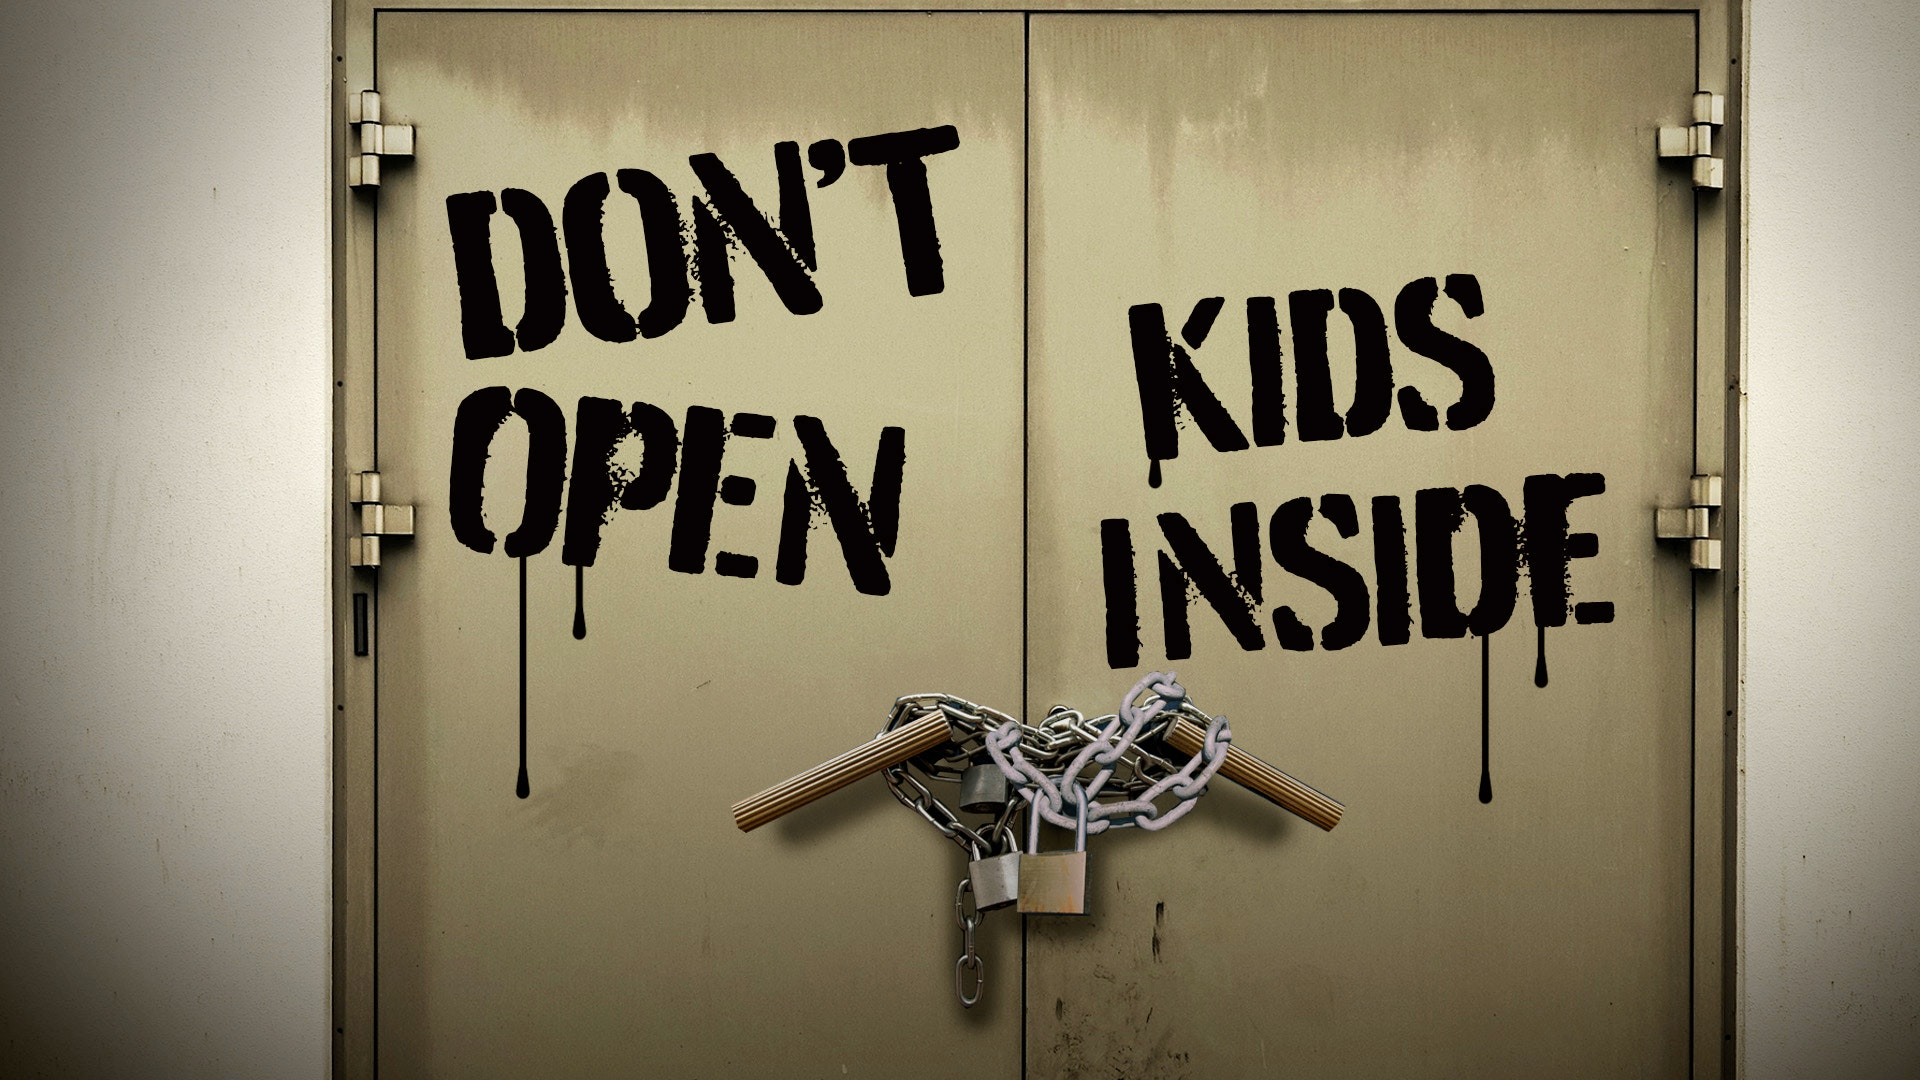 Ep. 643 - Children Made To Suffer So That Adults Can Feel Safe